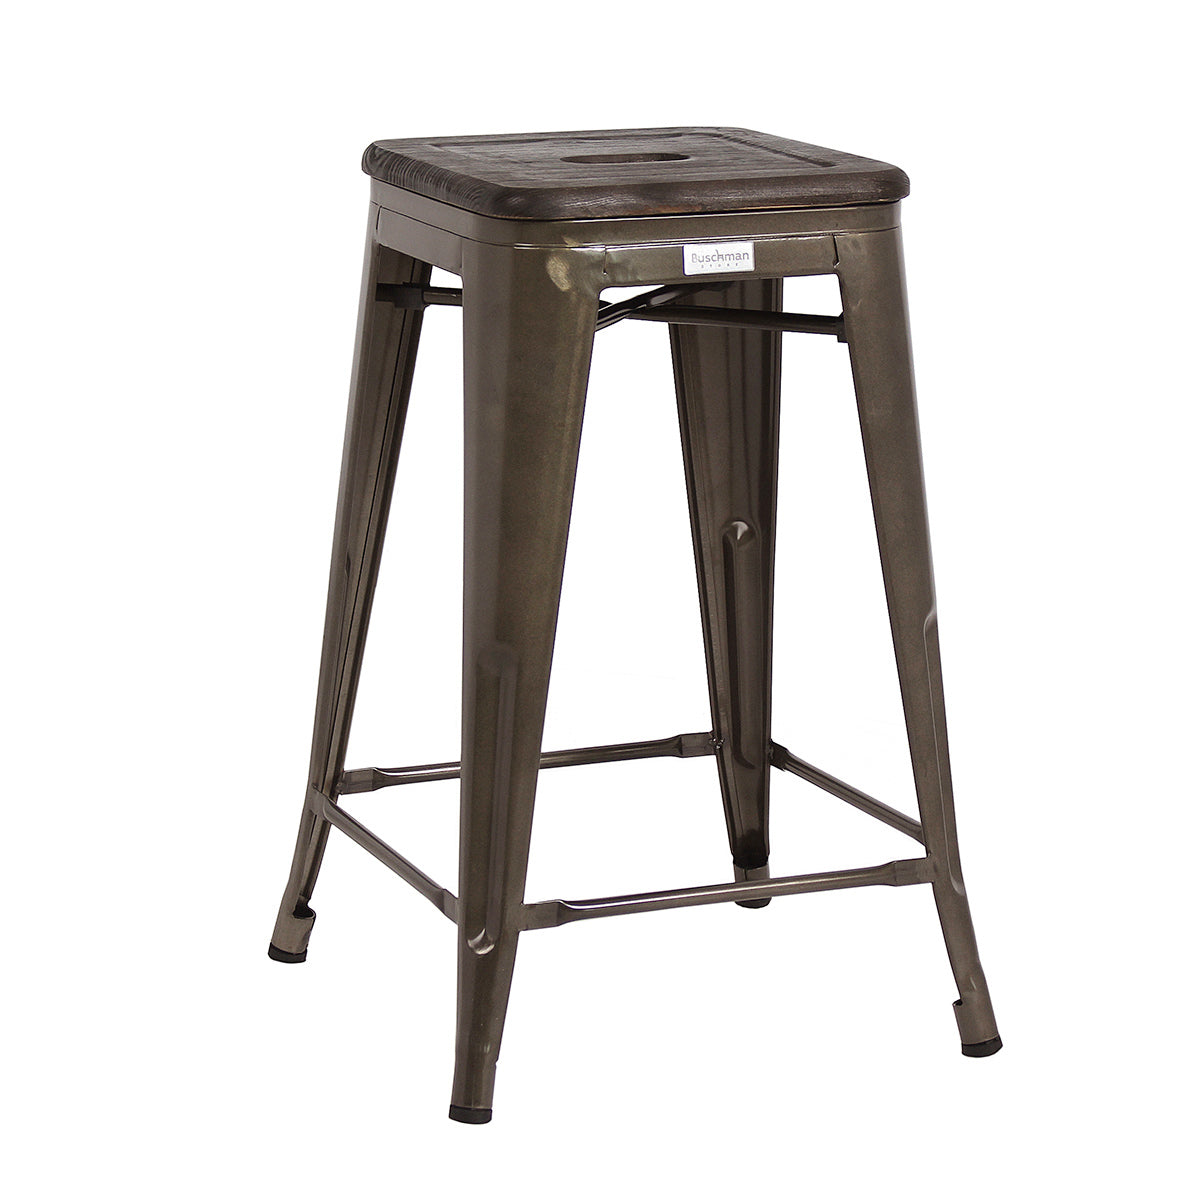 "Buschman Metal Bar Stools 24"" Counter Height, Indoor/Outdoor and Stackable, Set of 4 (Gun Metal with Premium Wooden Seat)"